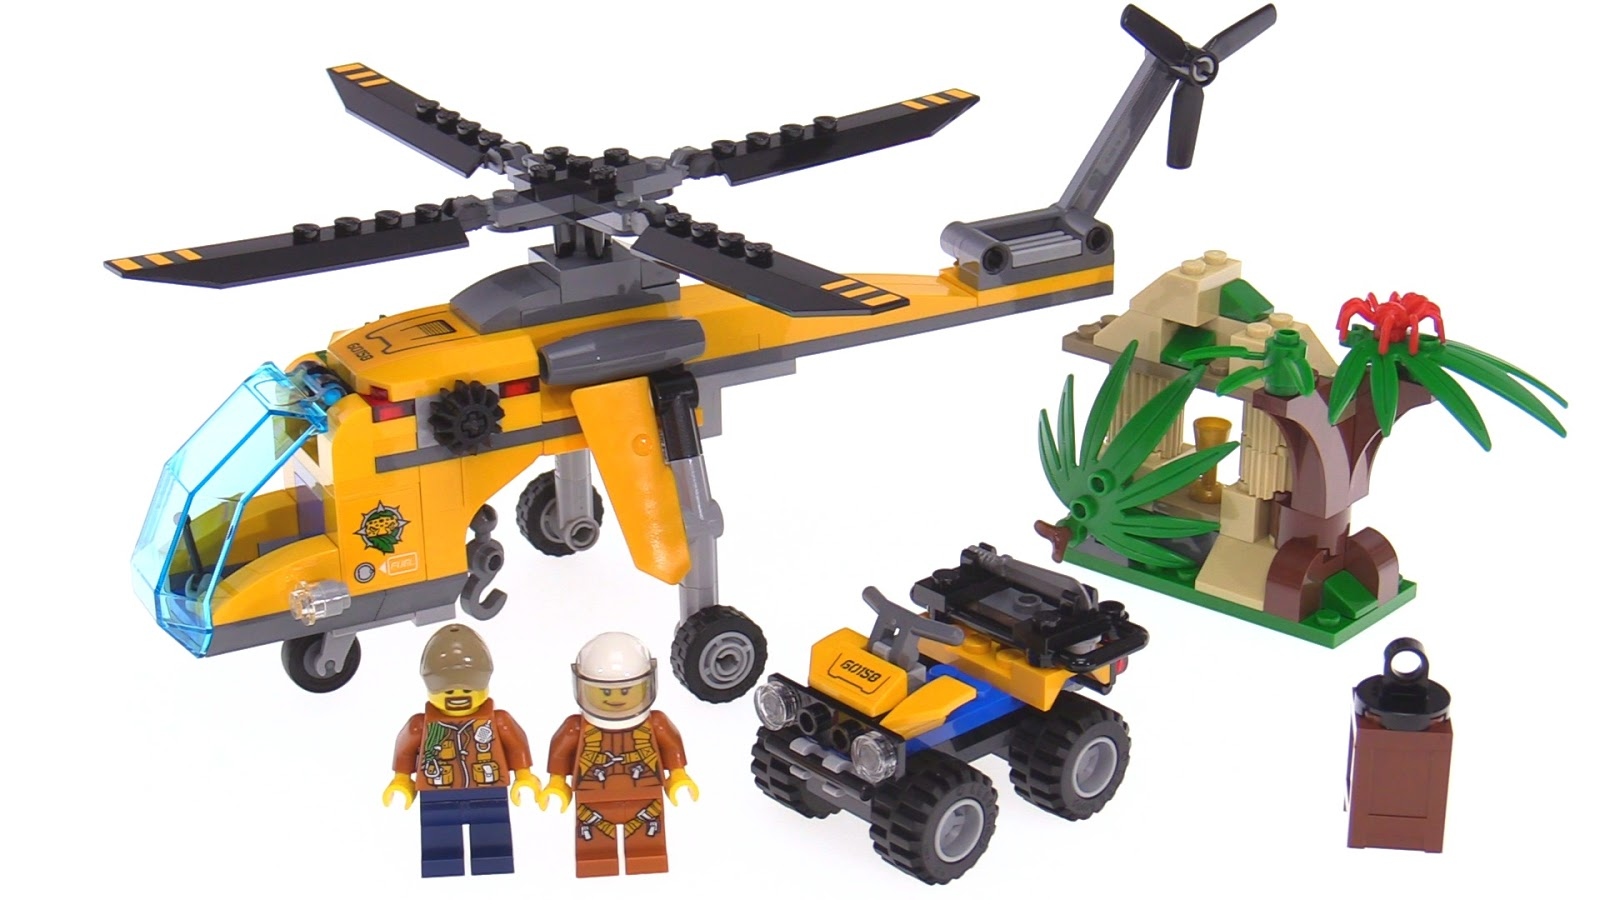 LEGO City Jungle Cargo Helicopter review - 60158